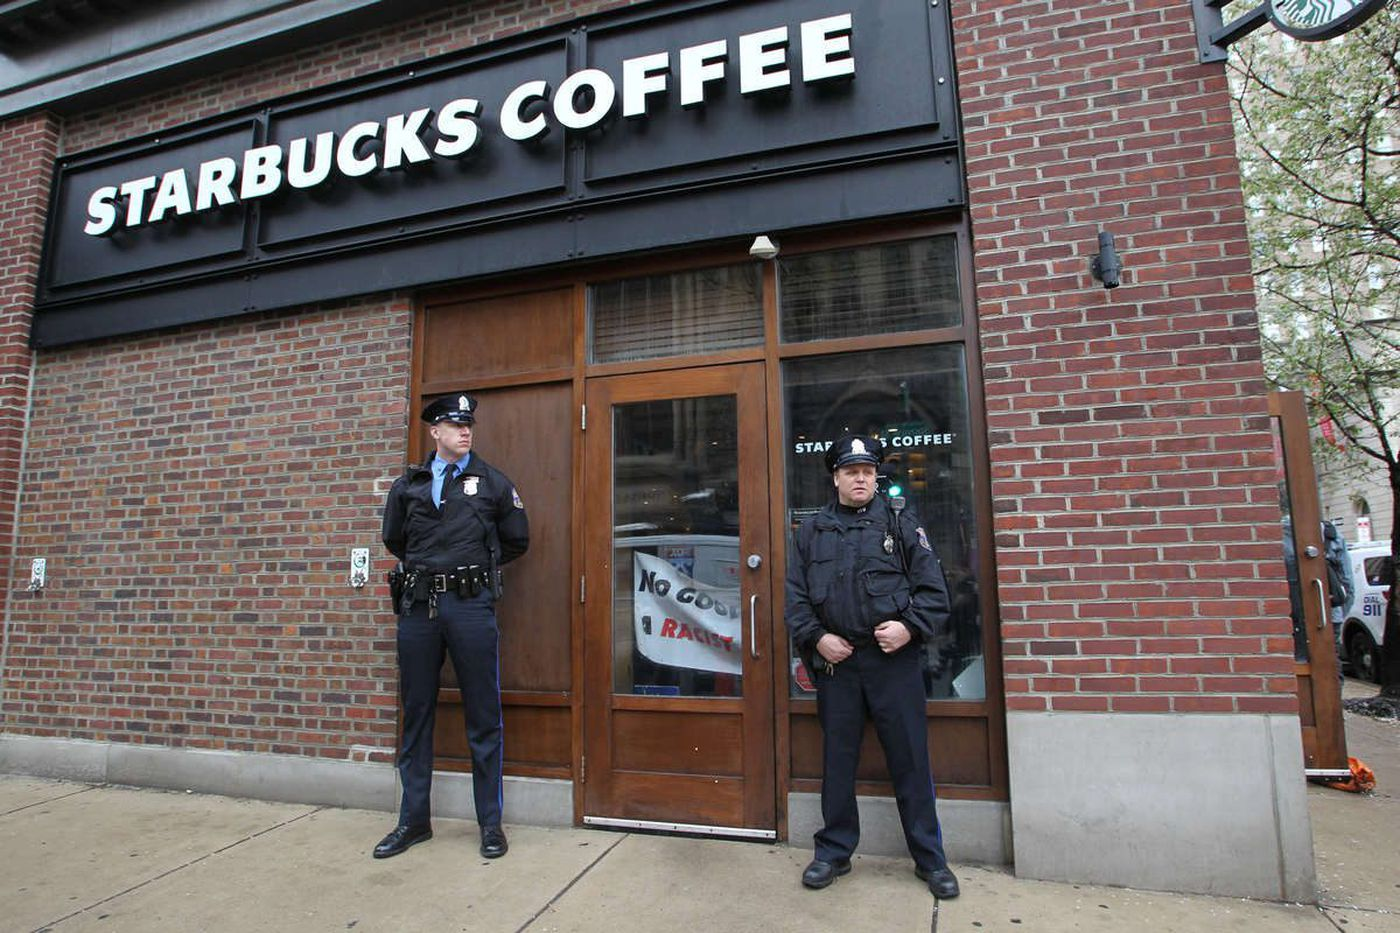 Mayor Kenney: We cannot allow the Starbucks incident to define Philadelphia | Opinion